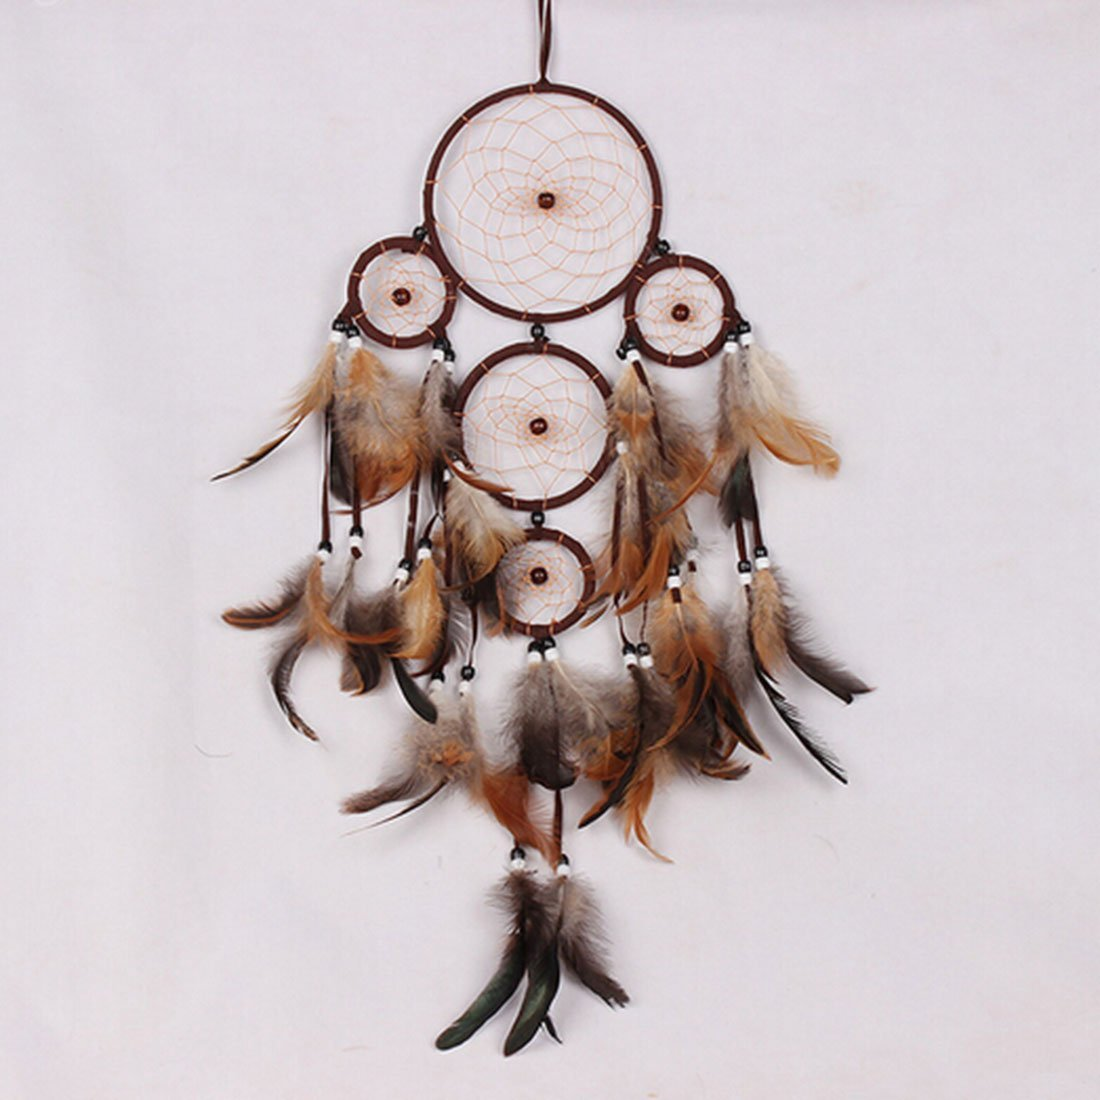 Little Chair Dark Brown Handmade Feather Beads Dream Catcher Multi Circulars Net Car Home Room Wall Hanging Decoration Party Wedding Ornament Gift